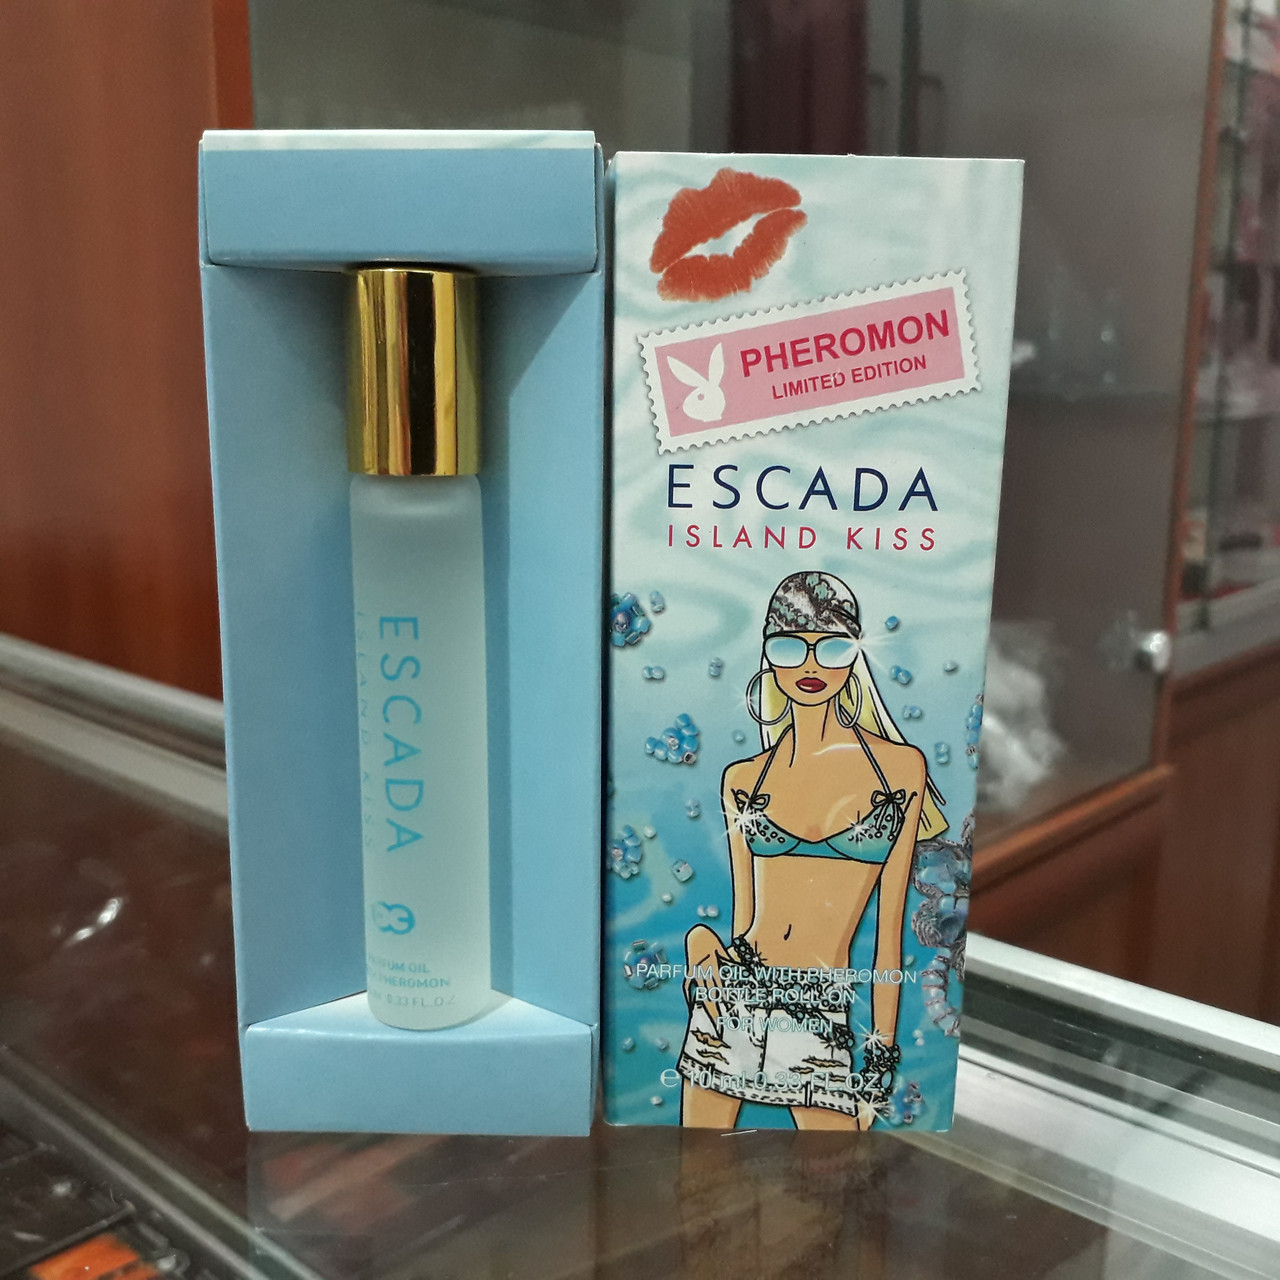 Духи с феромонами Escada Island Kiss, 10ml.